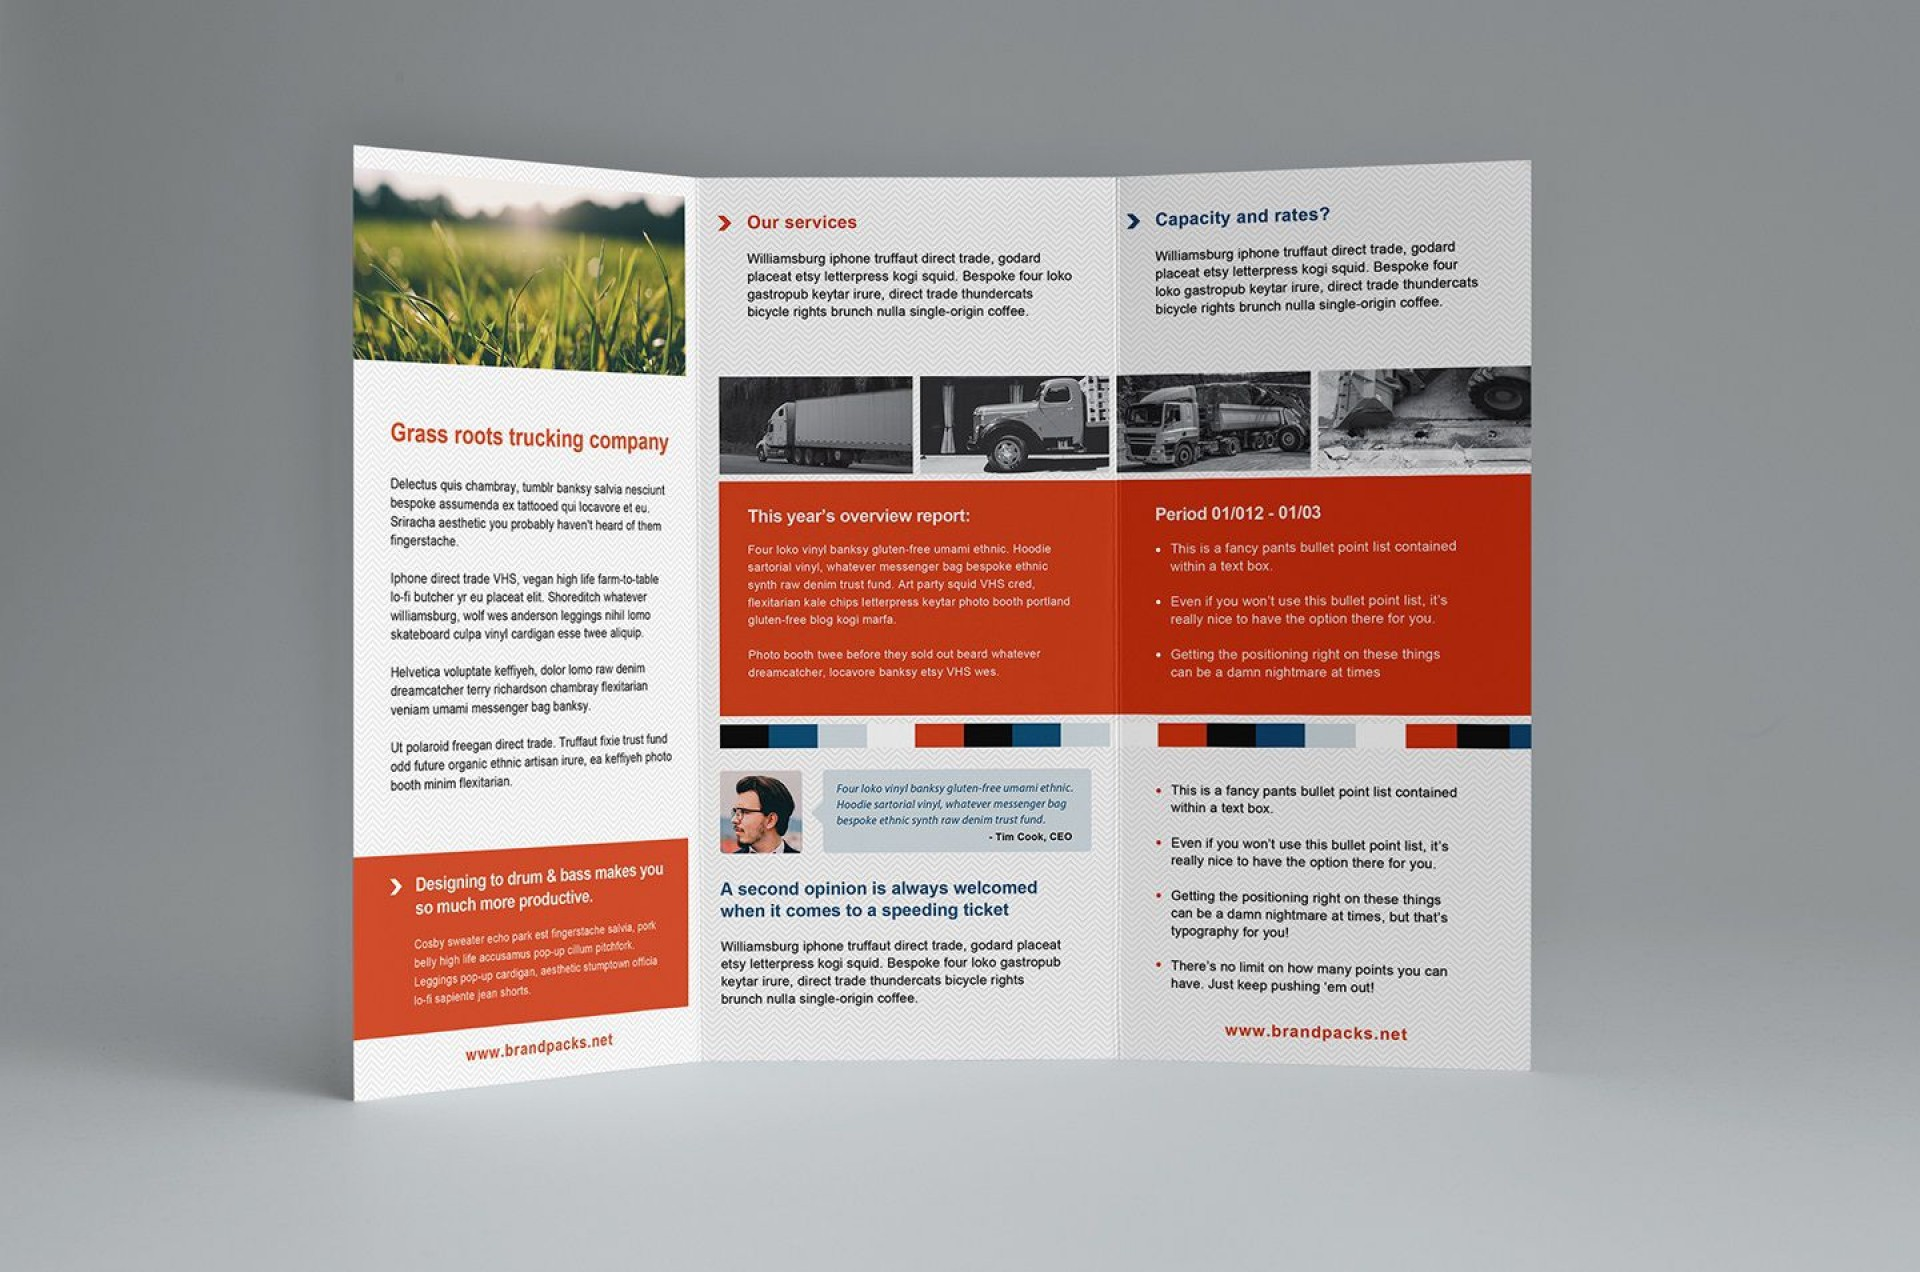 006 Shocking Brochure Template Microsoft Word Free Tri Fold Highest Clarity  Blank For 2010 Download1920